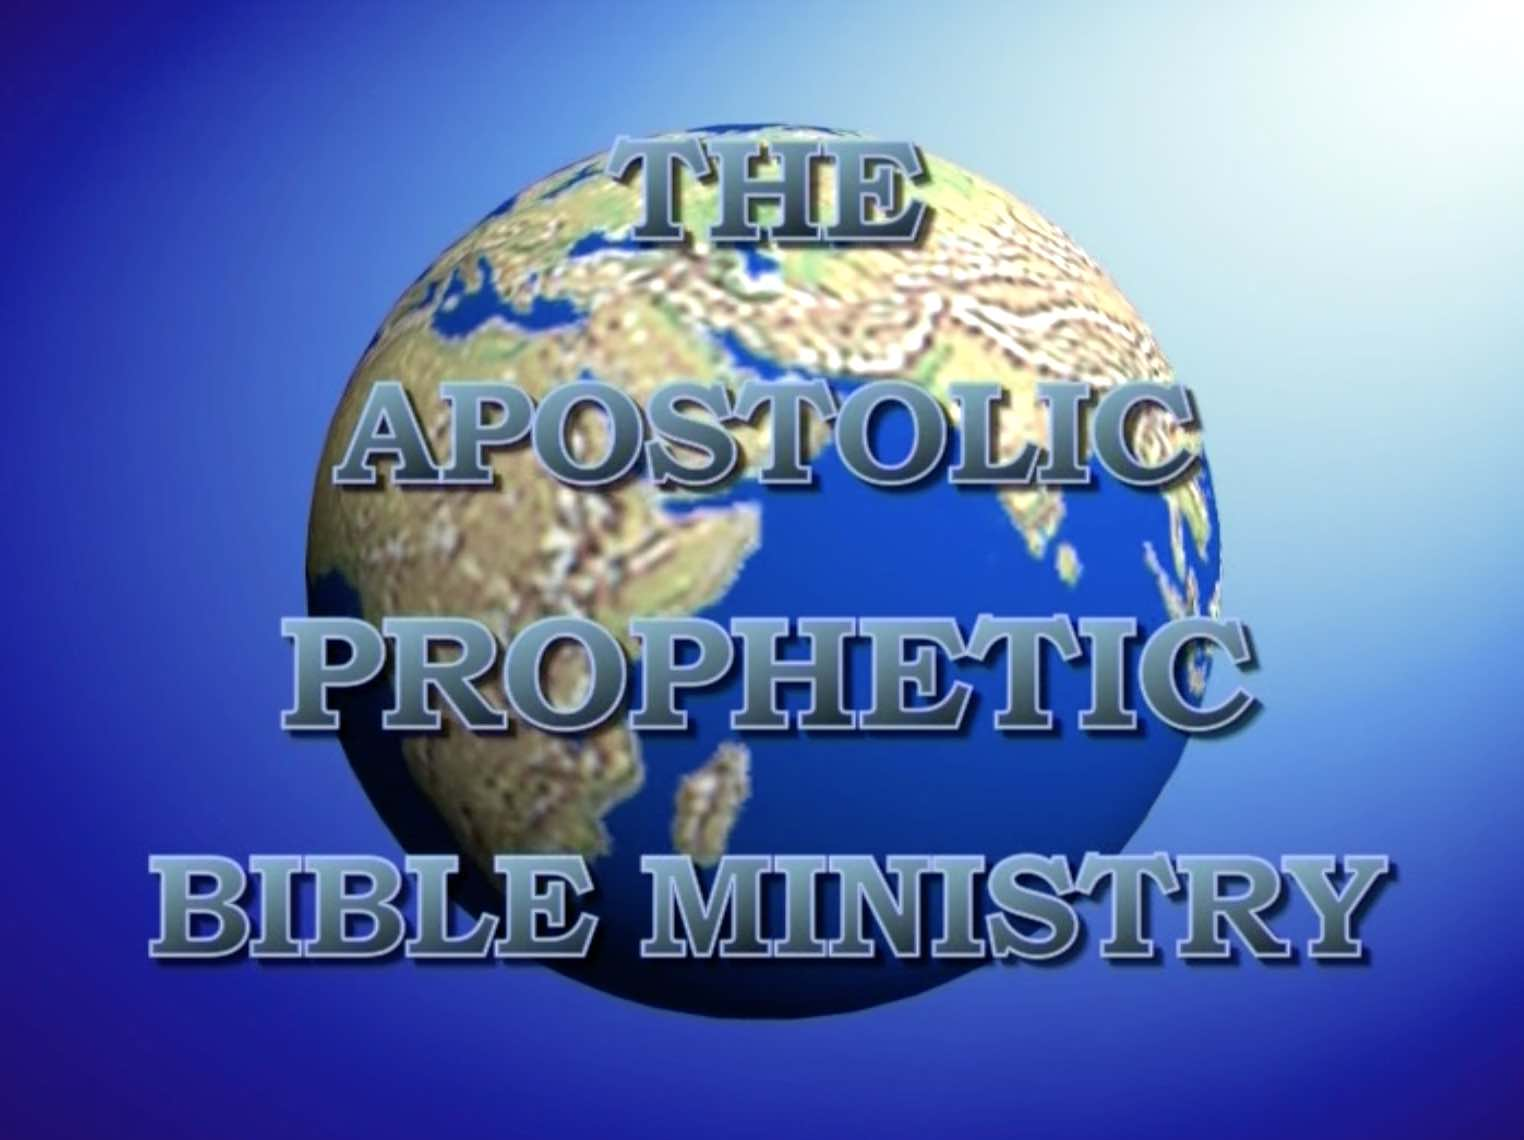 Apostolic Prophetic Bible Ministry 002 - Knowing the Lord personally